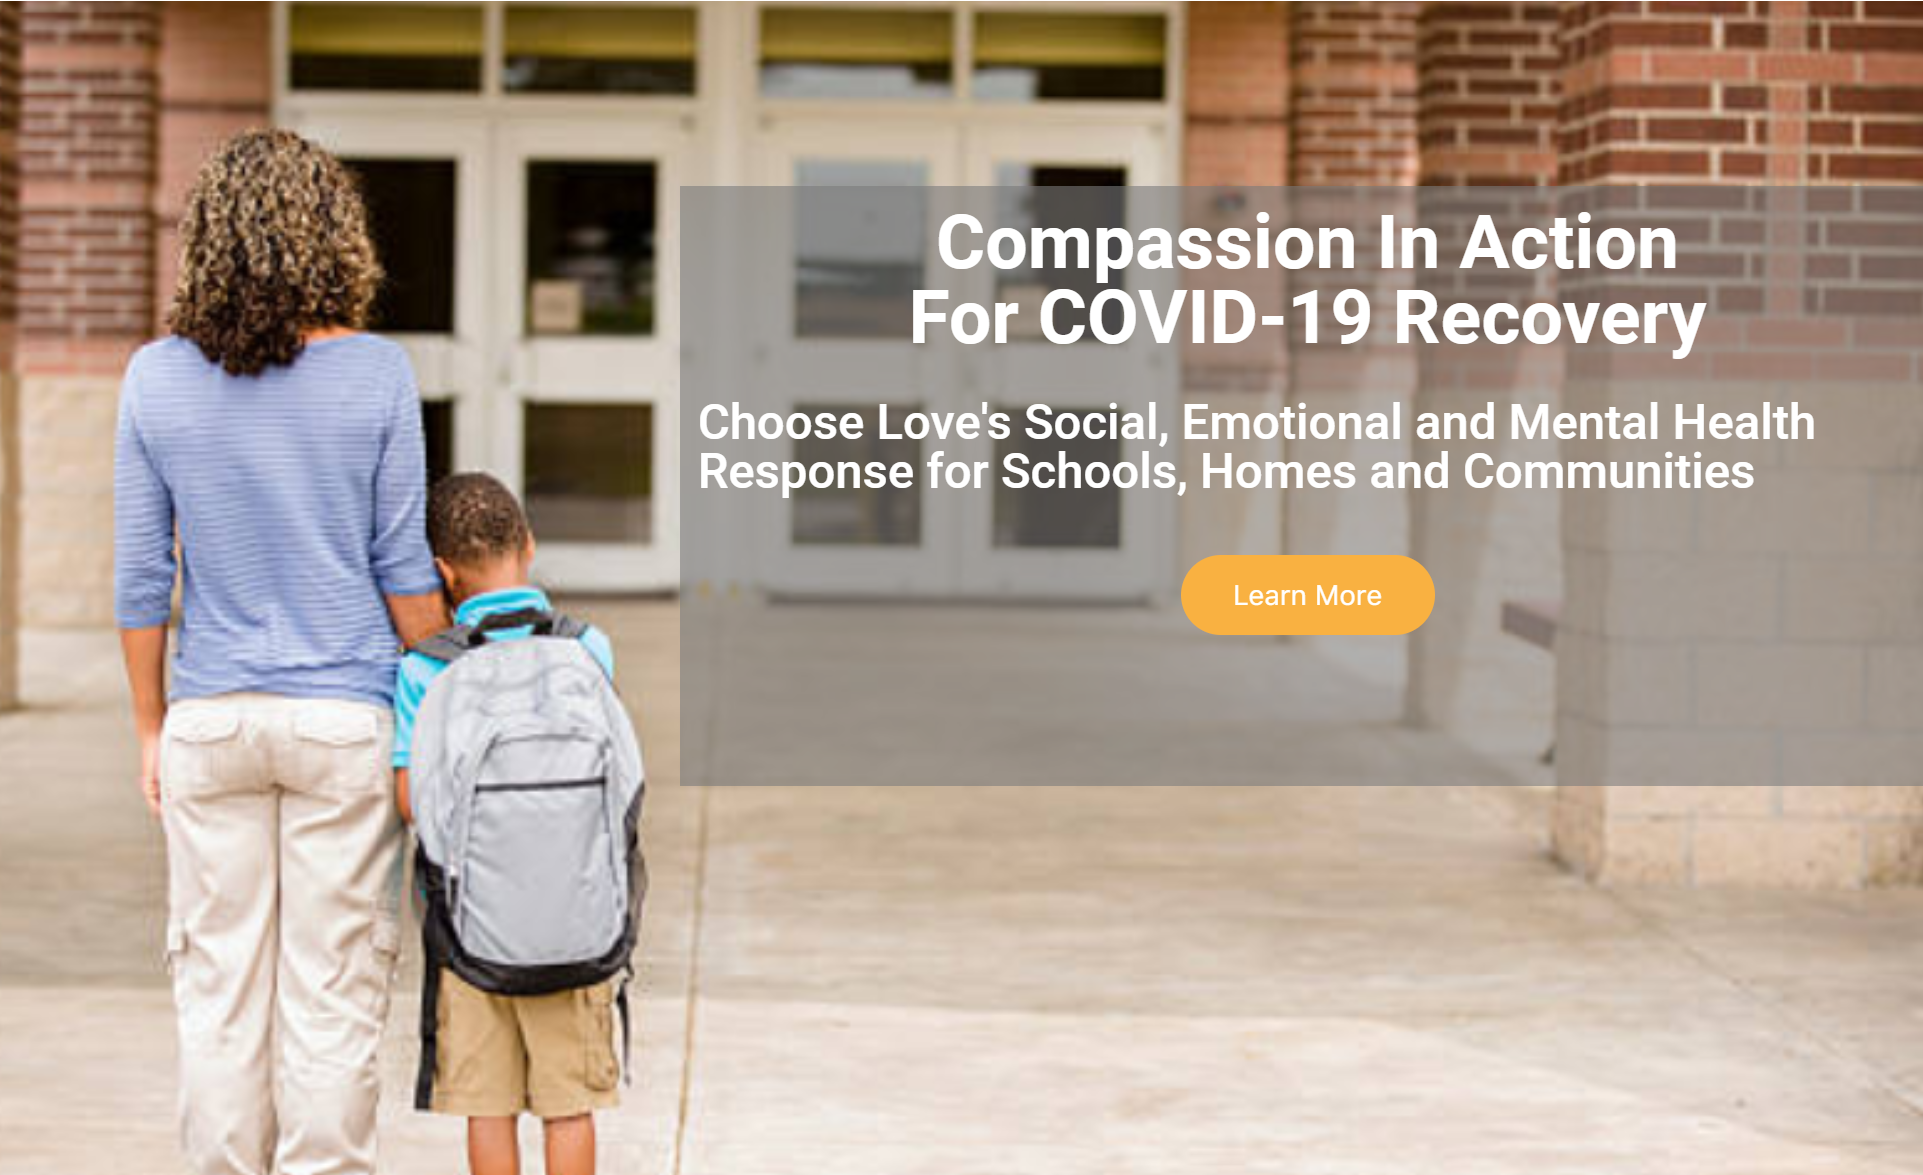 covid response children mental health social emotional learning recovery